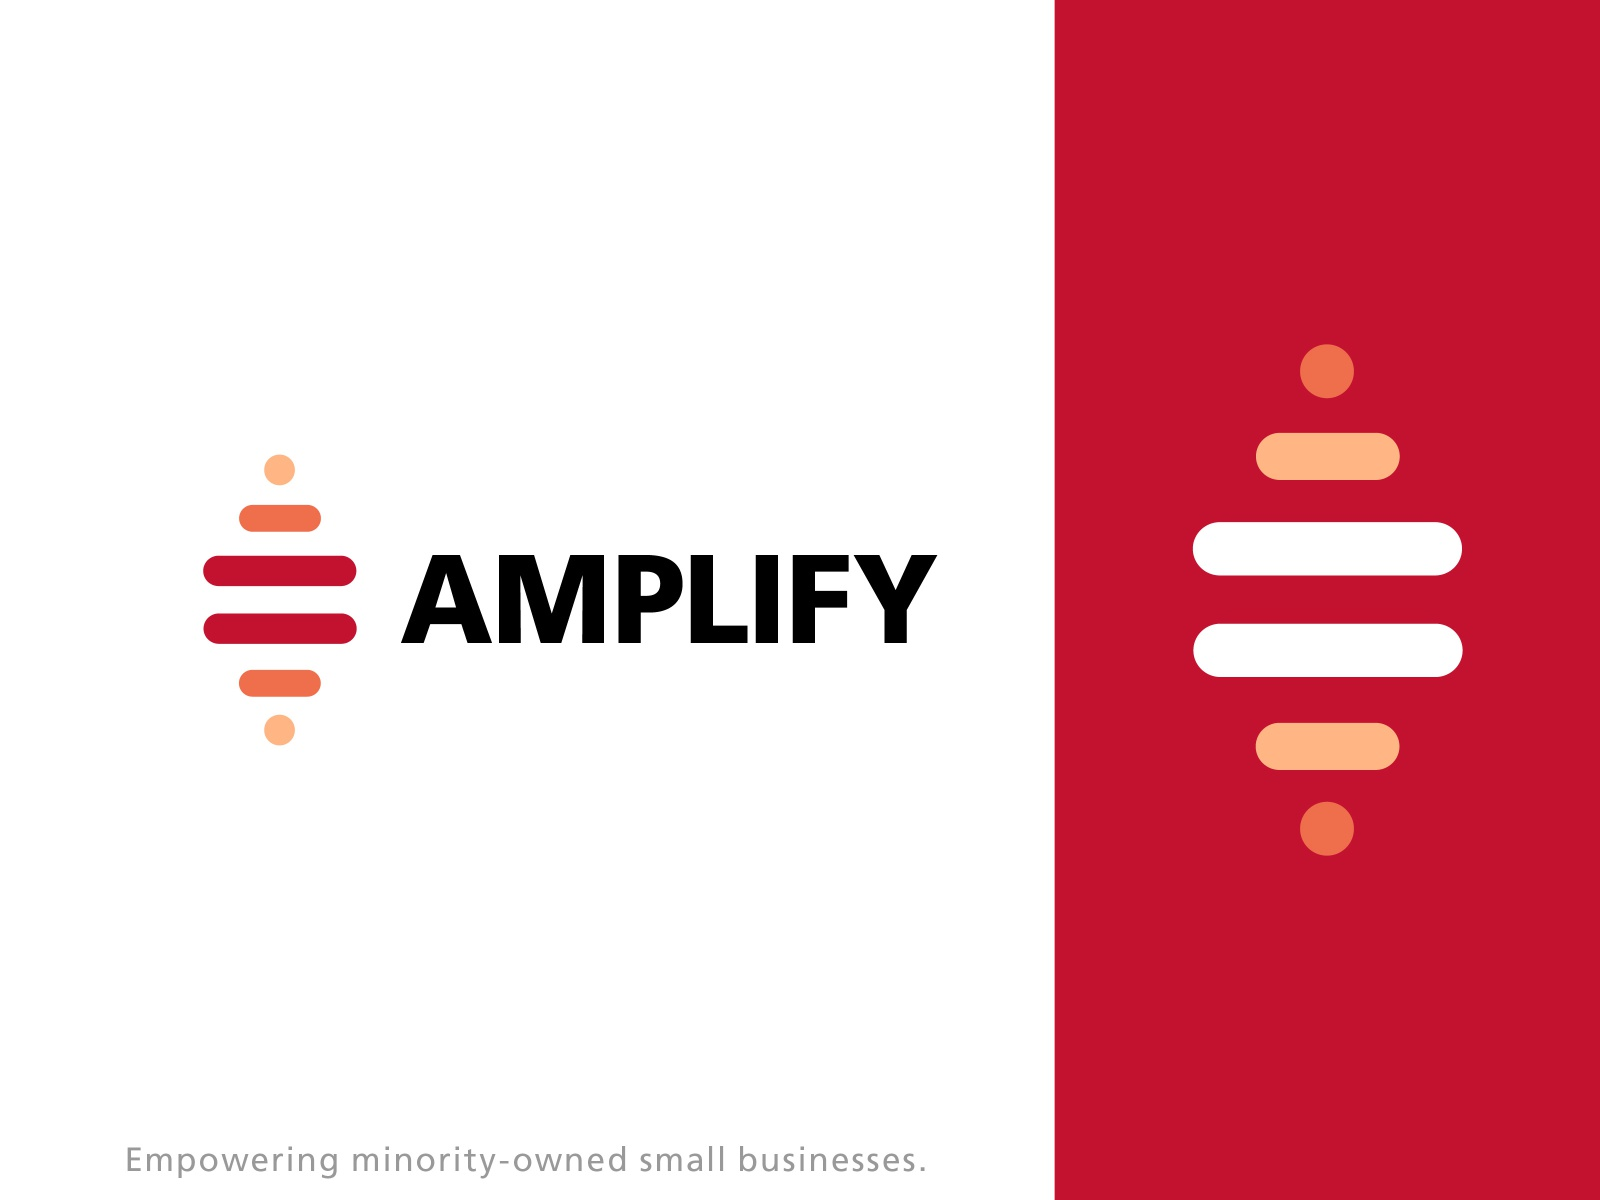 Amplify Small Businesses Concept